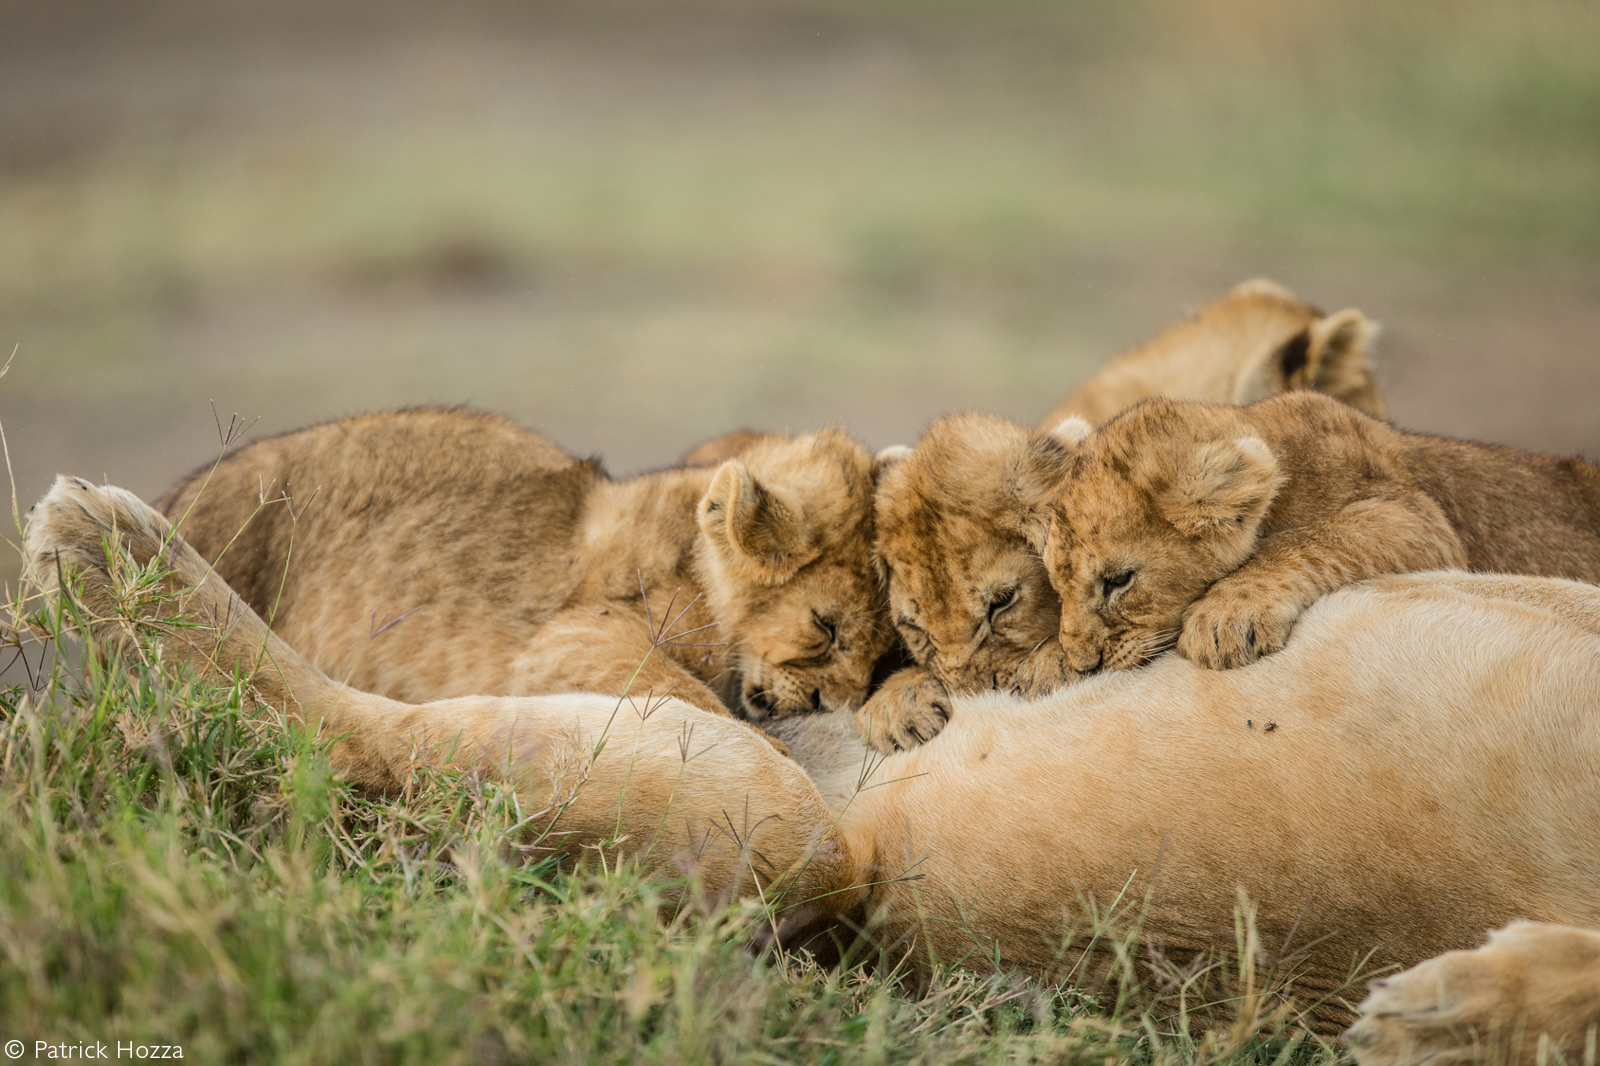 Lion cubs suckling from their mother. Ndutu, Ngorongoro Conservation Area, Tanzania © Patrick Hozza